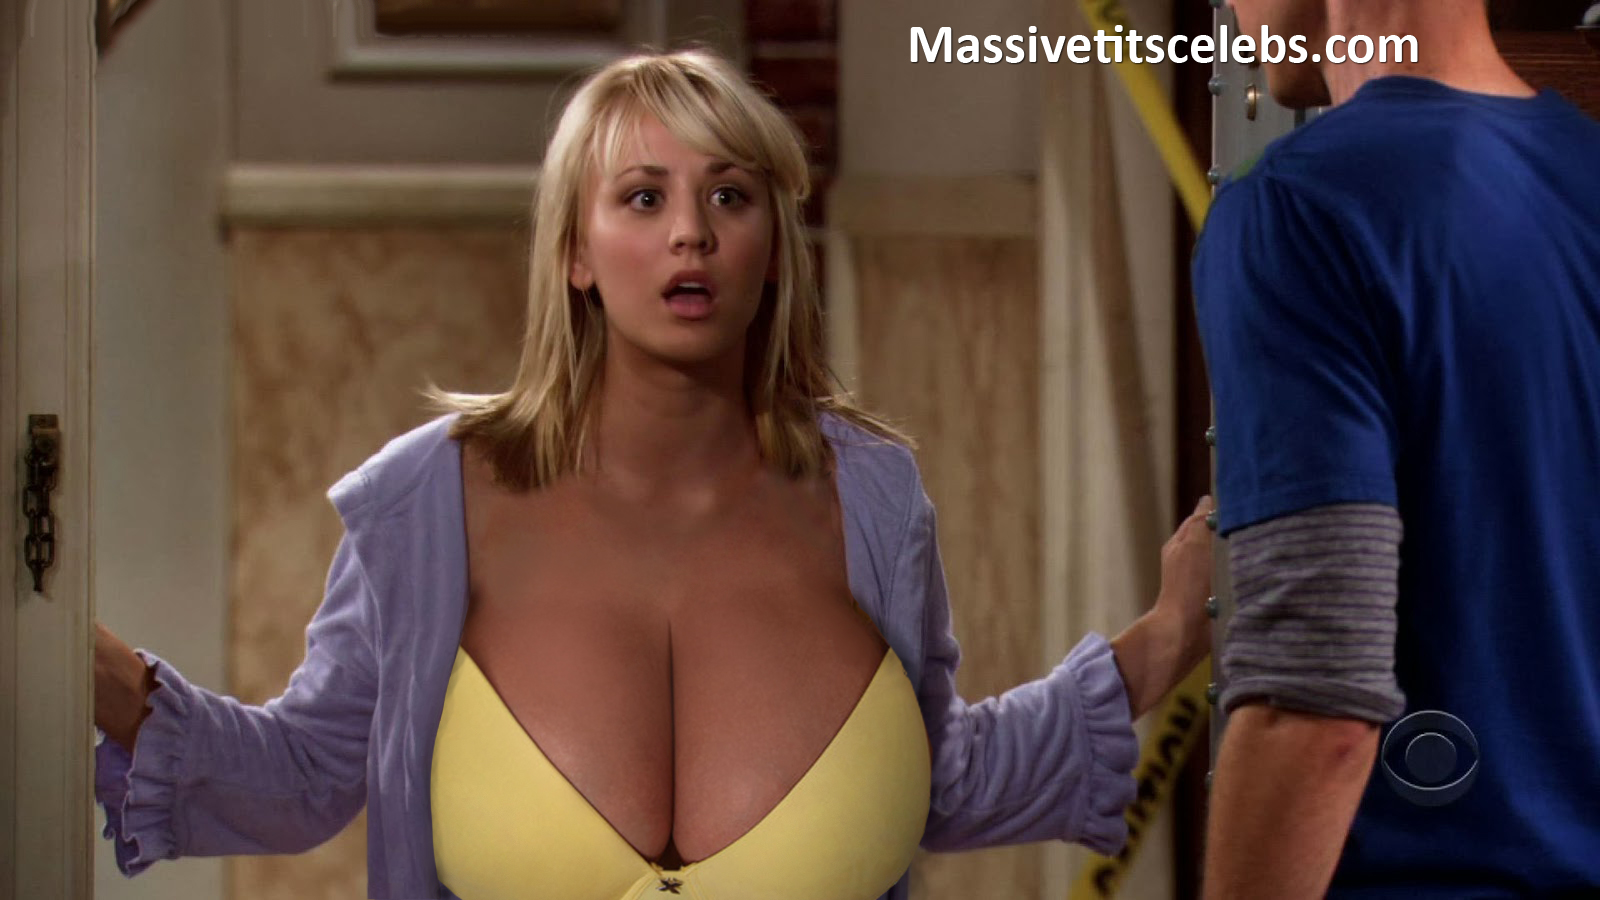 Kaley-Cuoco-Tits-Boobs